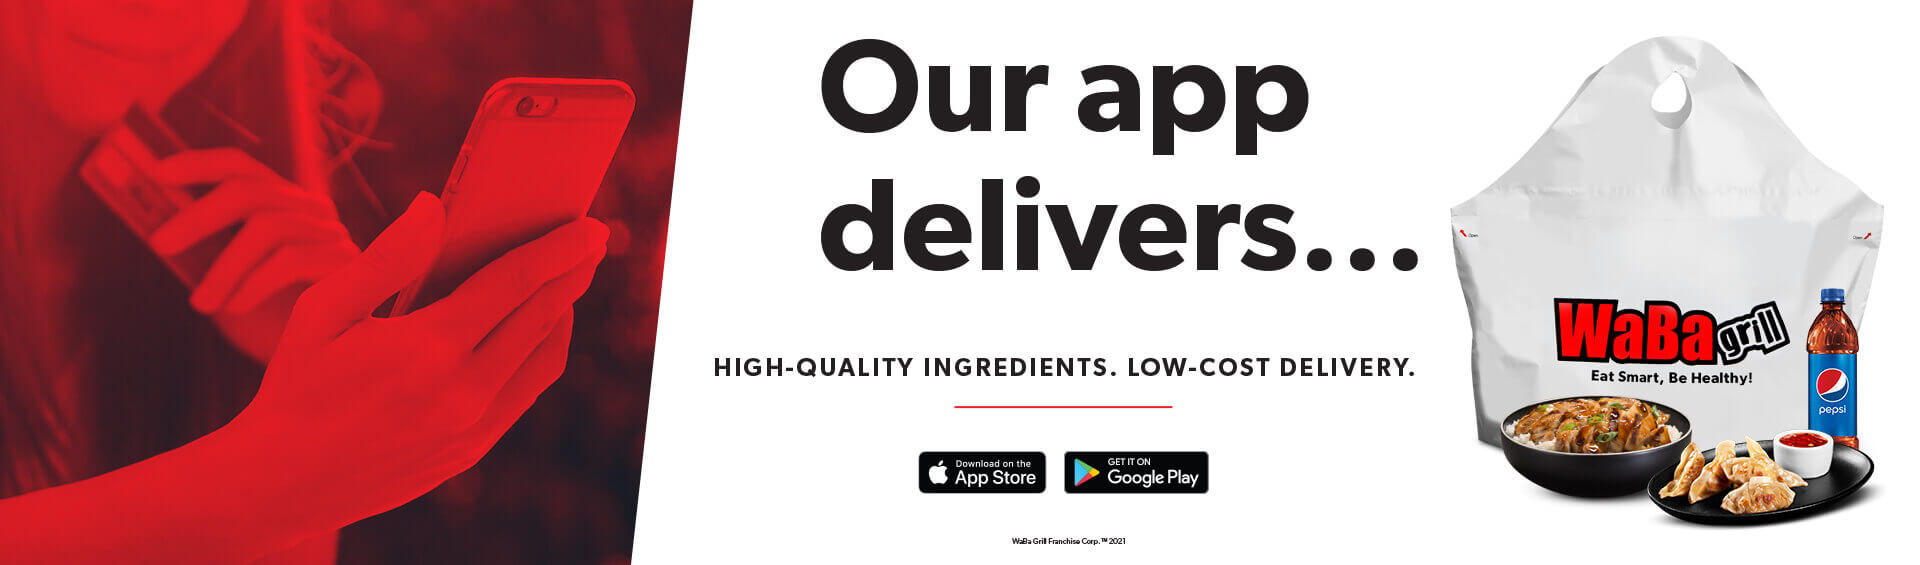 Our App Delivers High Quality Ingredients Low Cost Delivery